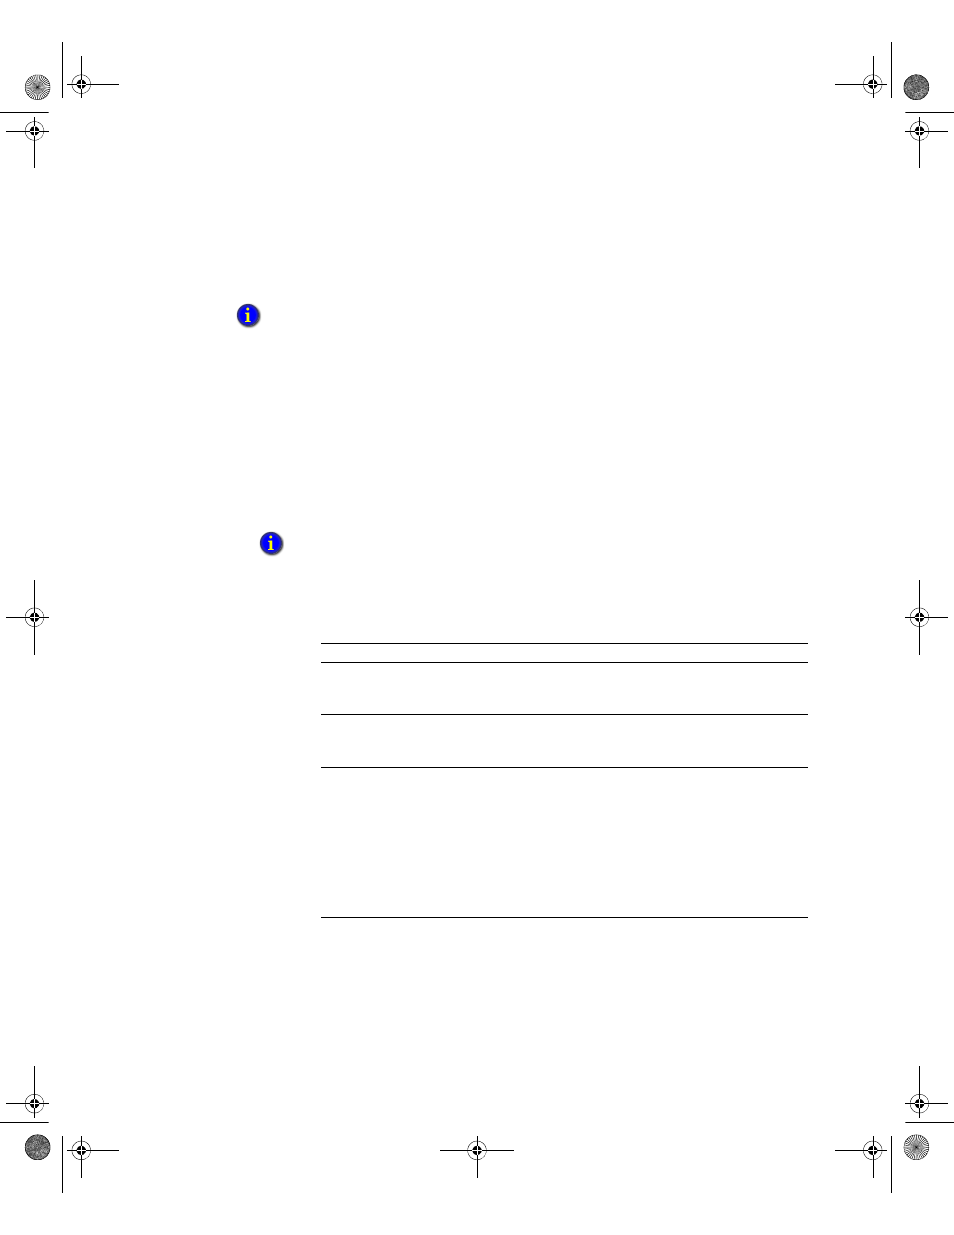 Rockwell Automation FactoryTalk AssetCentre Installation Guide 5 0